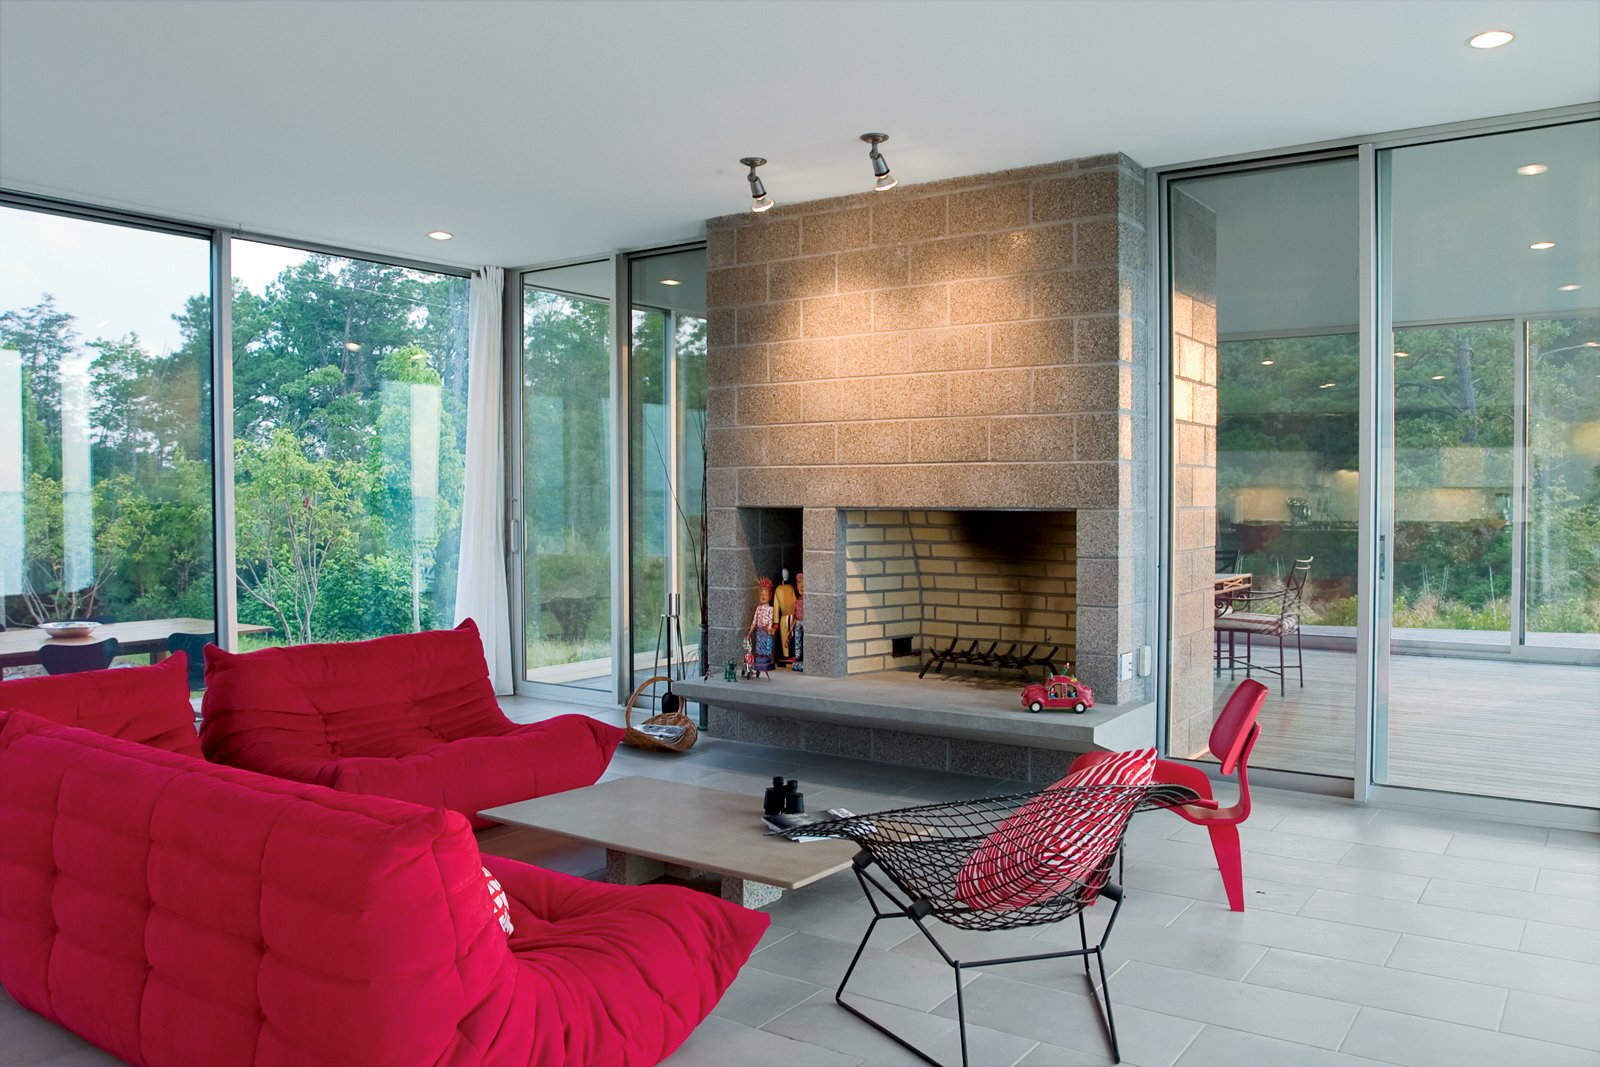 Magenta Togo sofas by Ligne Roset, a red Eames molded plywood chair, and wire Bertoia Diamond chair provide seating around the hearth. Tagged: Living Room, Standard Layout Fireplace, Wood Burning Fireplace, Chair, Ceramic Tile Floor, Sofa, Ceiling Lighting, and Coffee Tables.  Photo 1 of 2 in Row House